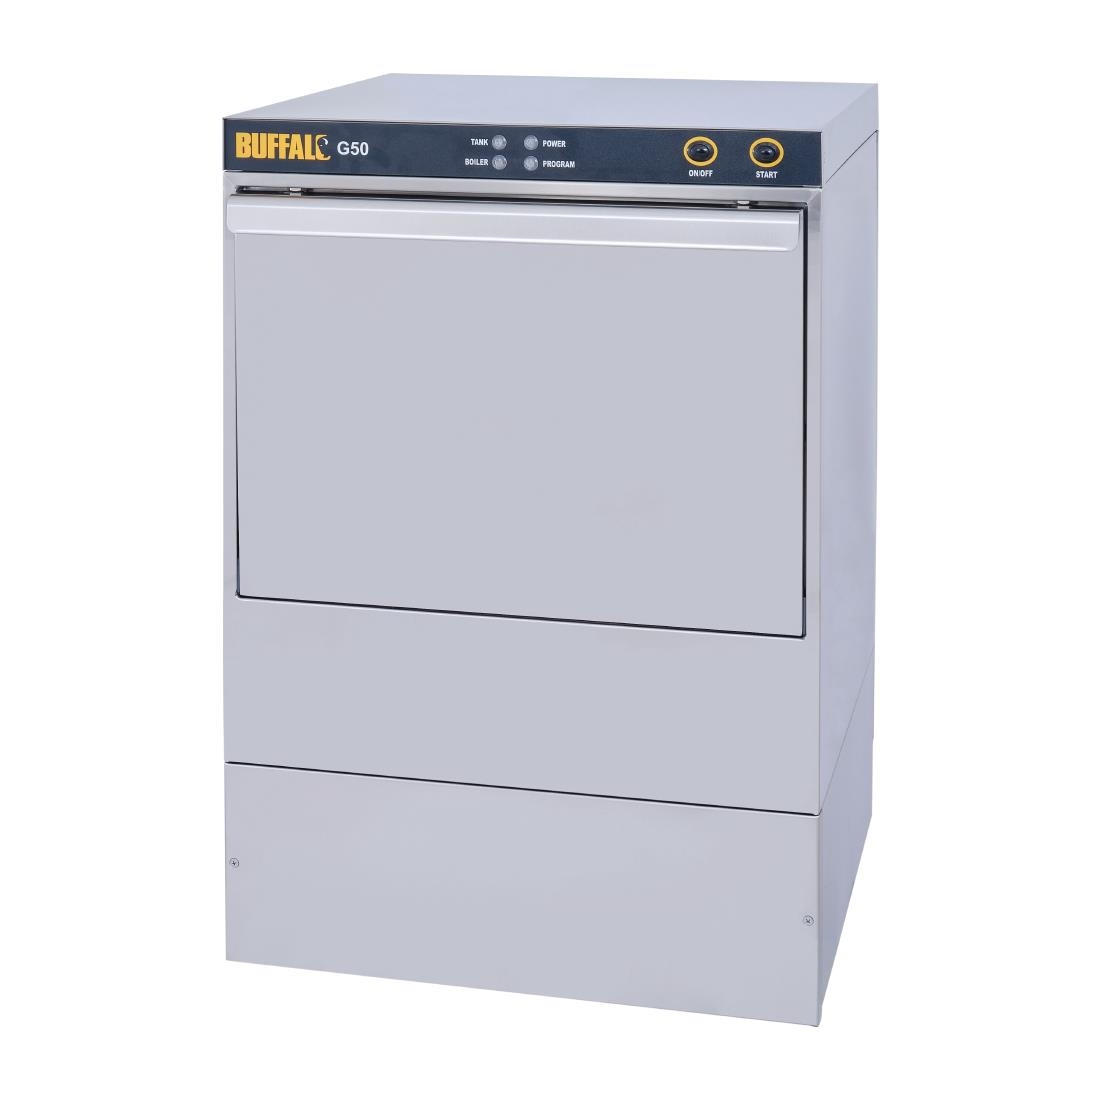 Image of Buffalo Undercounter Glasswasher with Drain Pump 500x500mm Baskets